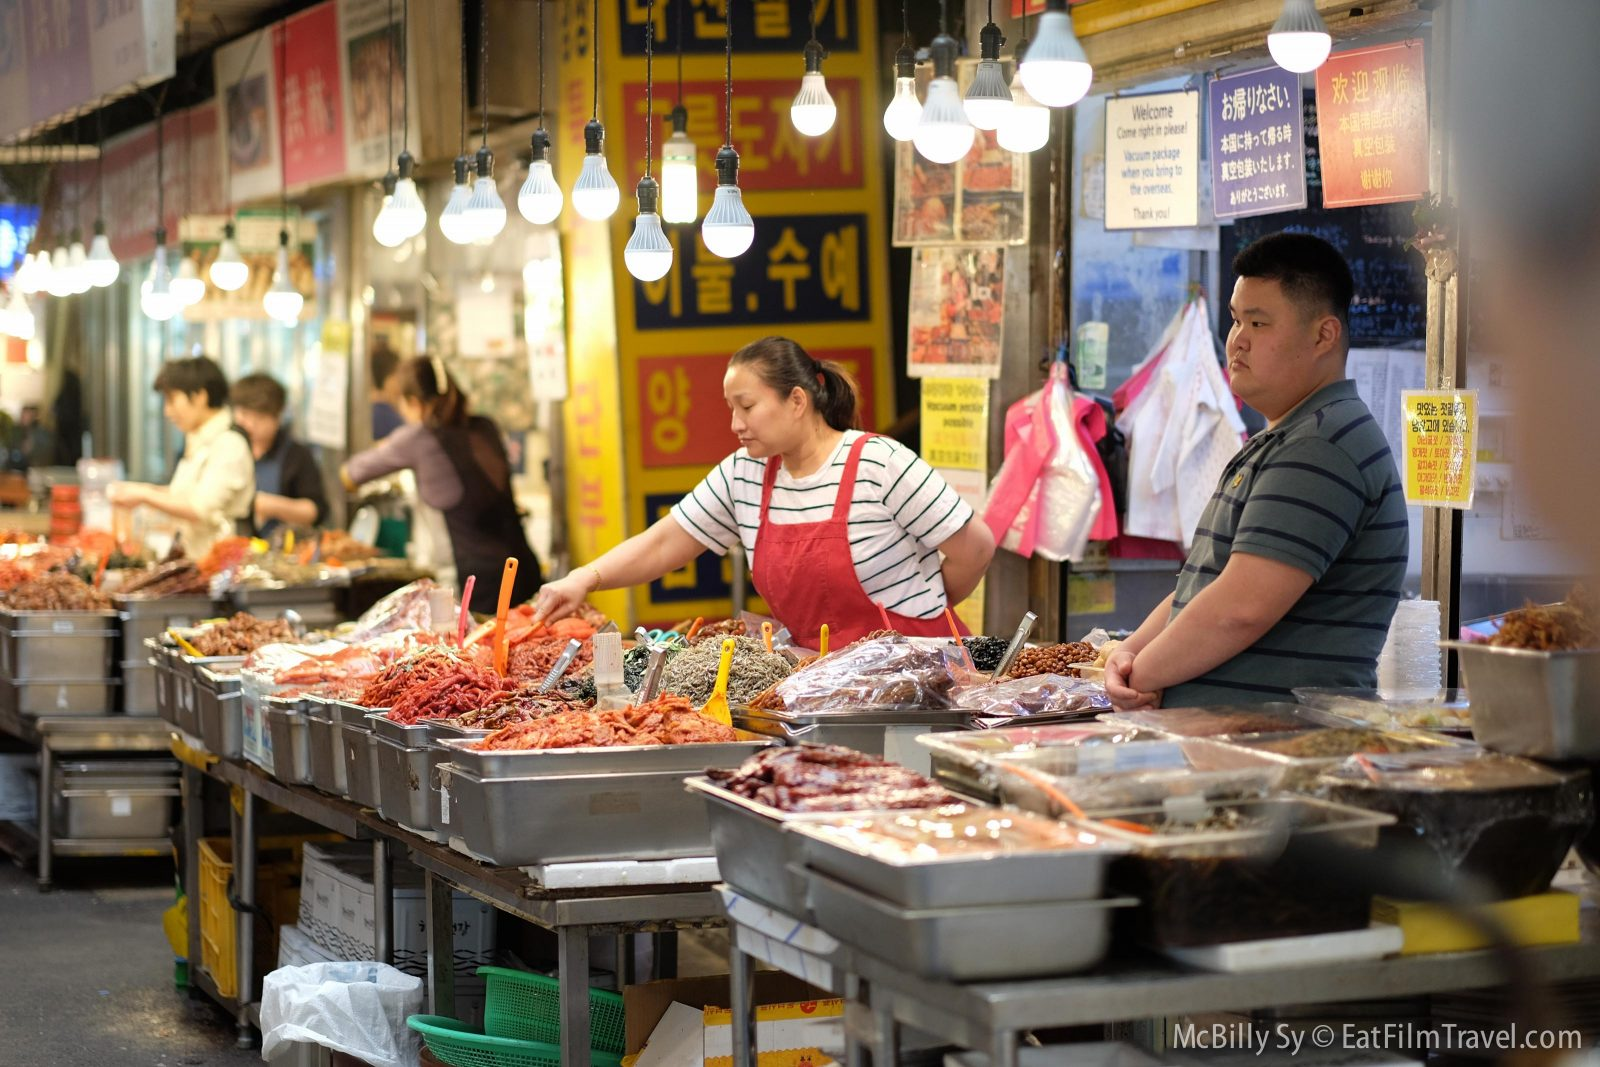 Food options in Gwangjang Market